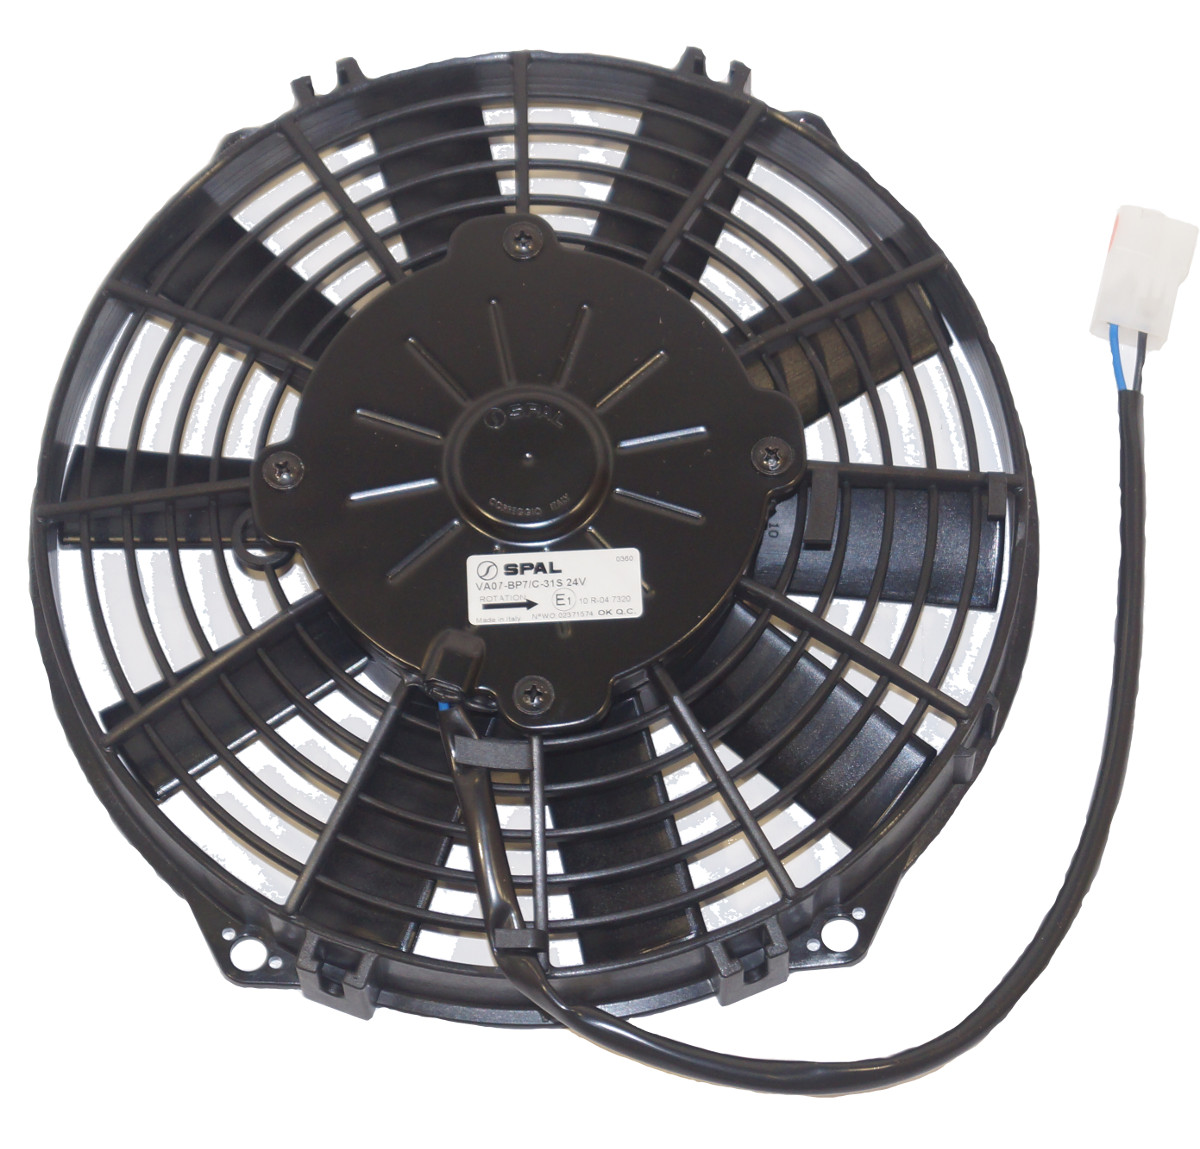 Axial fan 24V Ø255mm Blowing SPAL #8001673 | Lokab Systems